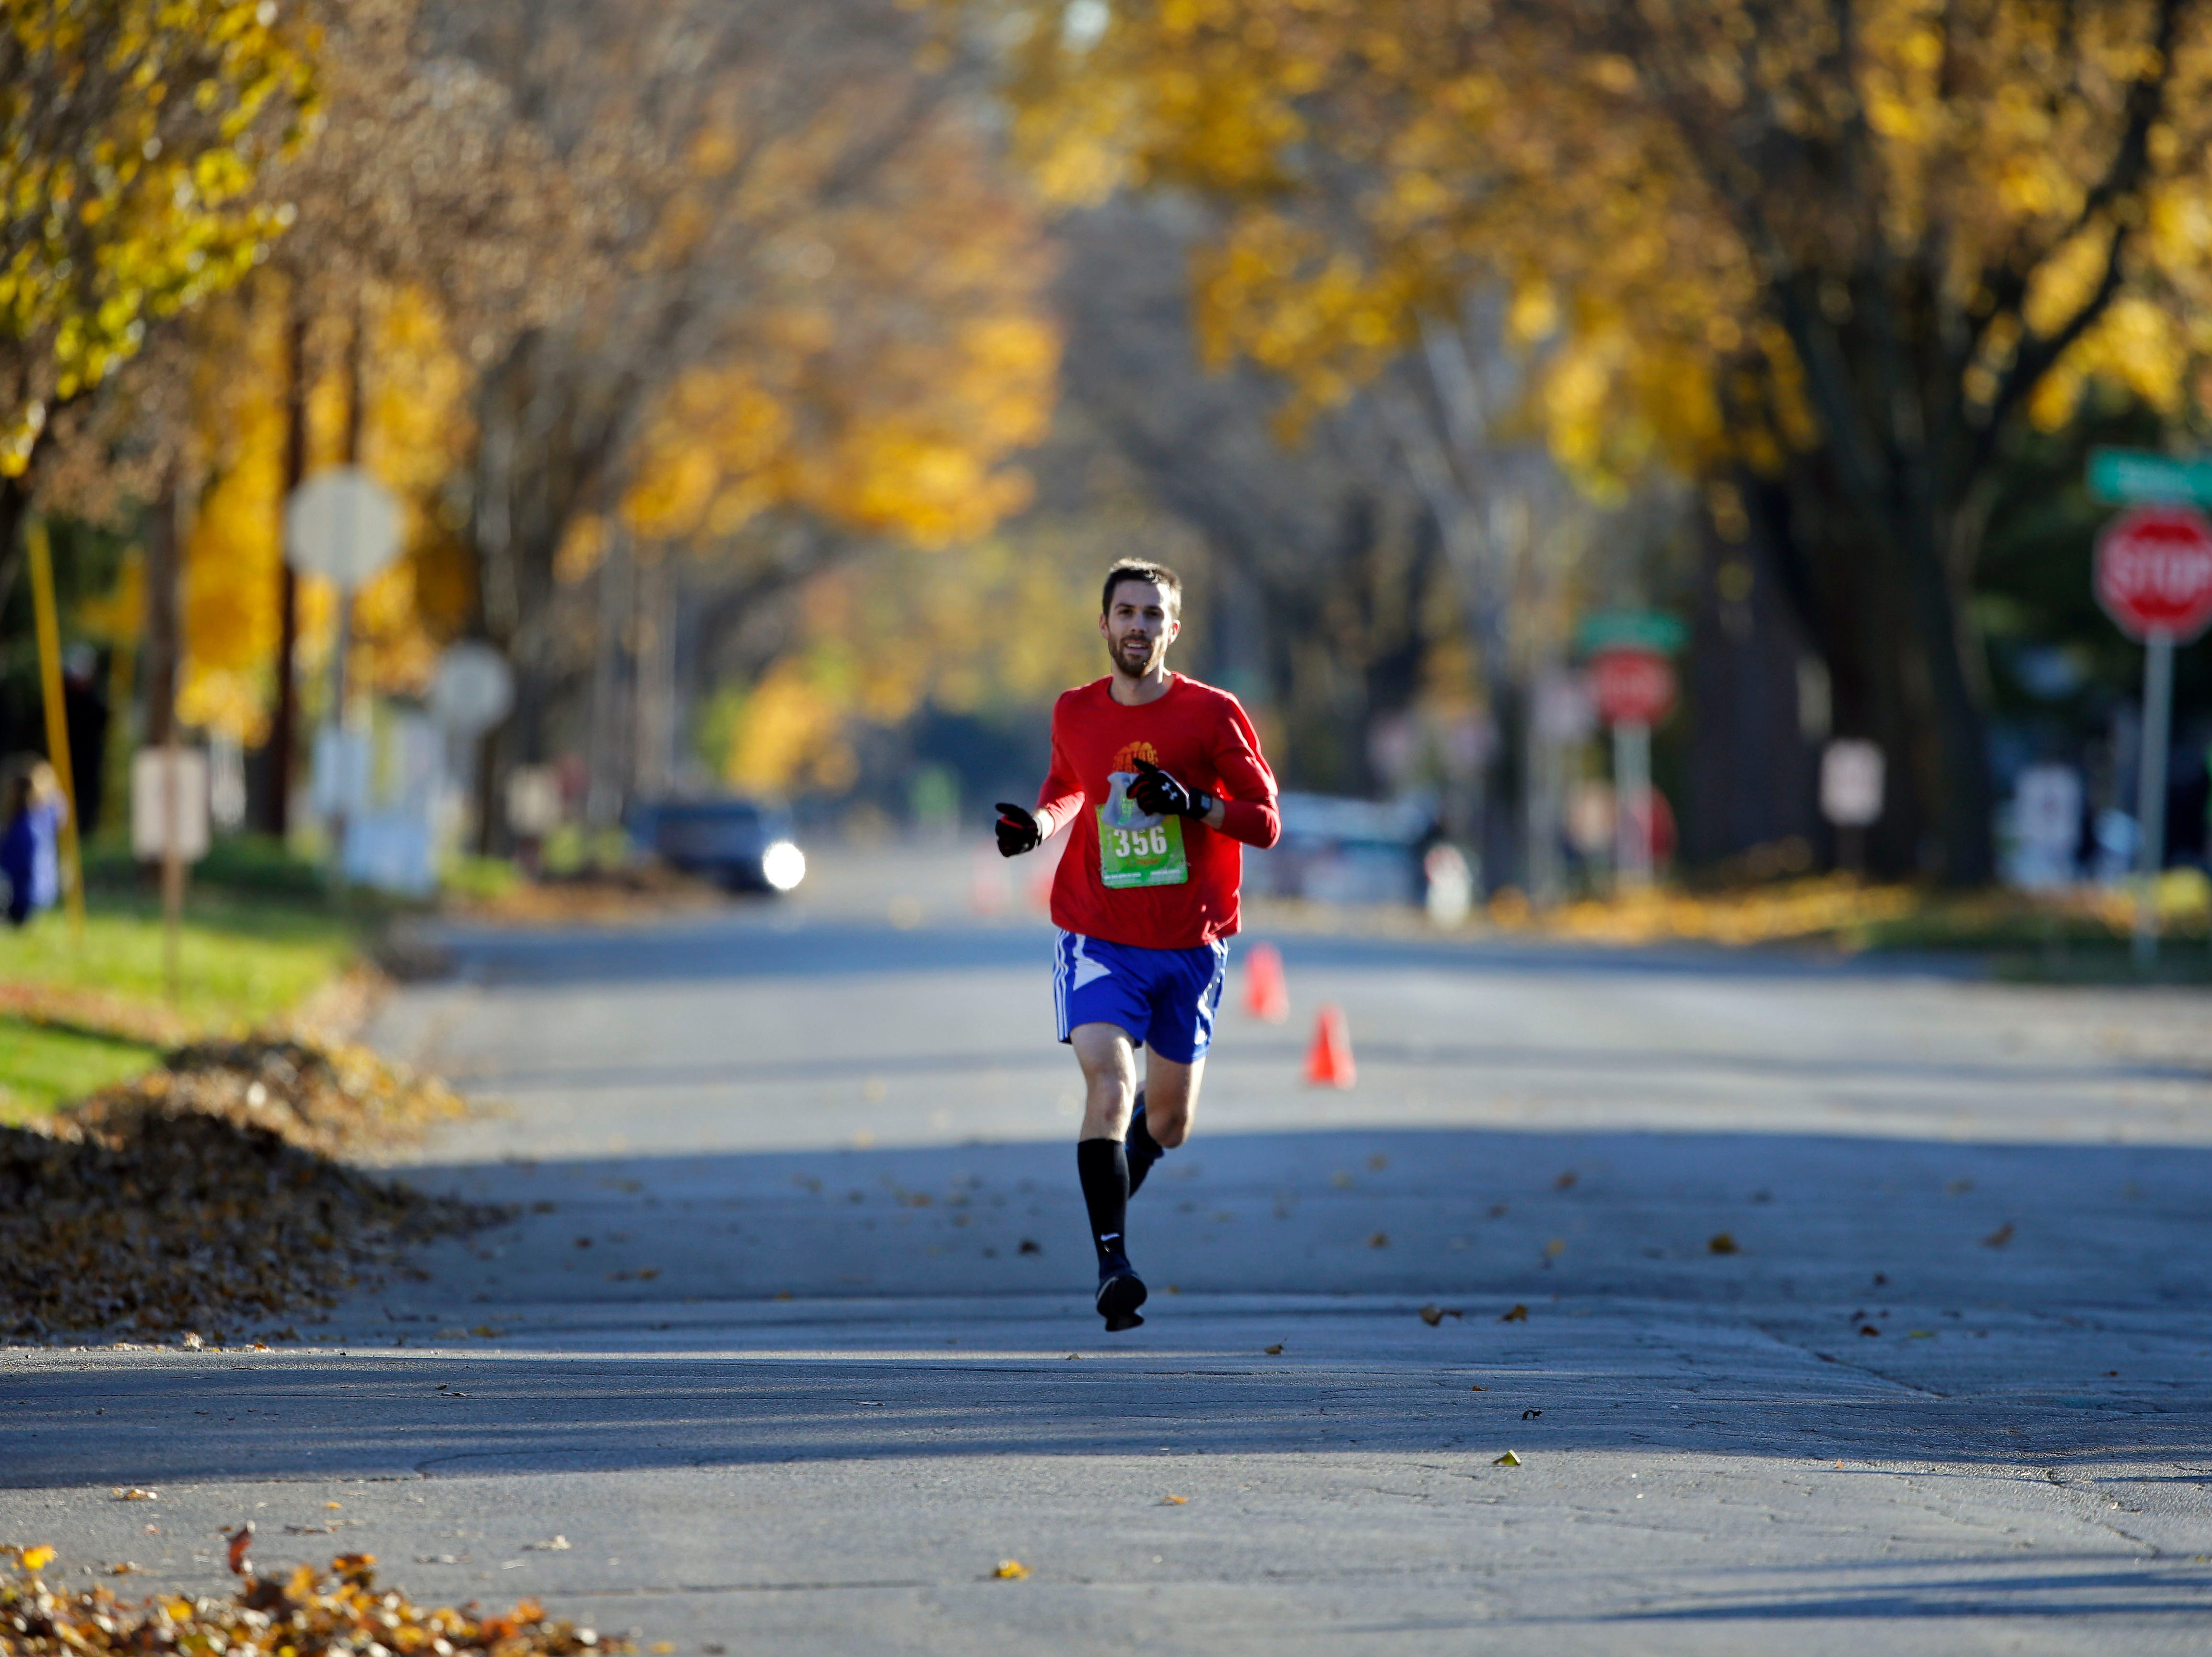 John Hollister nears the finish of the 4th annual Appleton Houdini 10K Saturday, November 3, 2018, in Appleton, Wis.